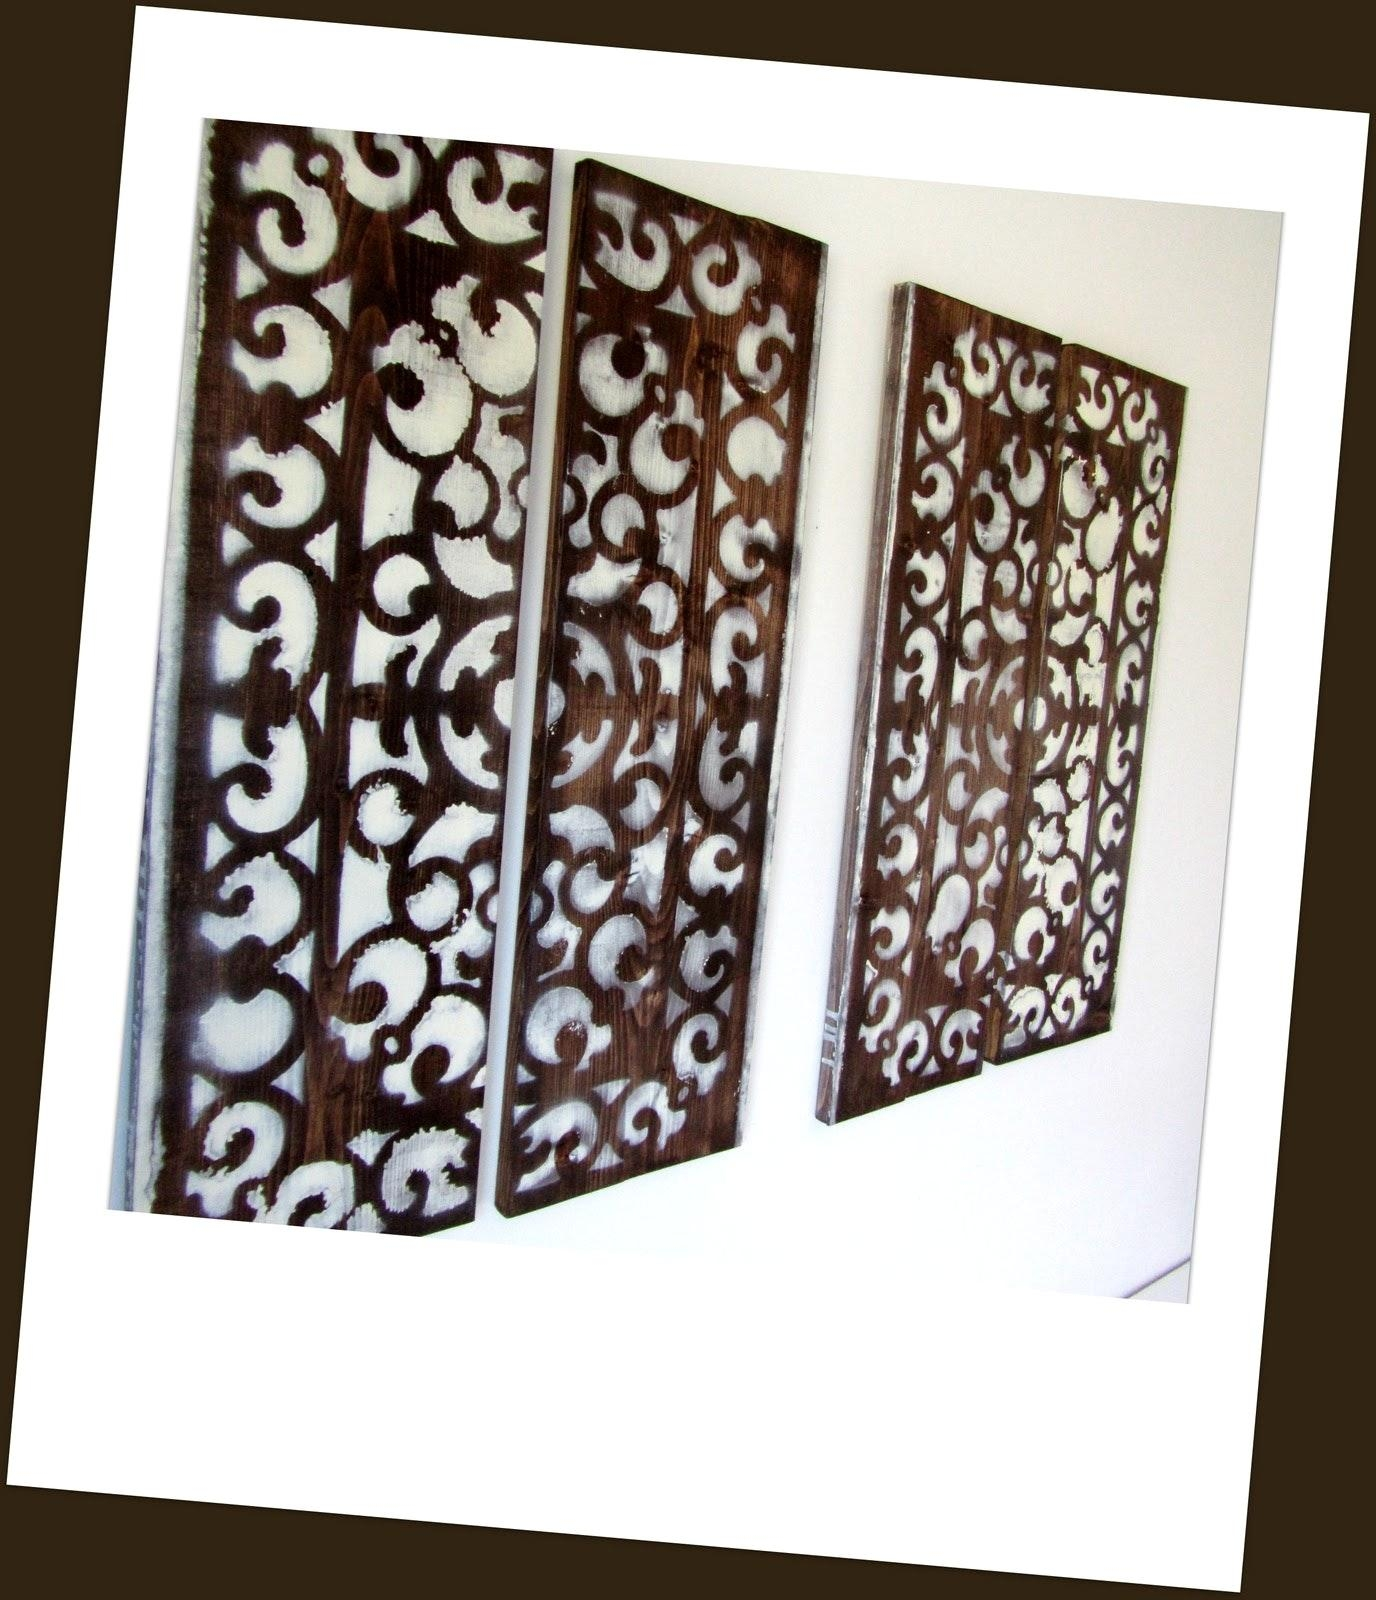 Endearing 90+ Wood Wall Art Panels Design Inspiration Of Ornate Throughout Wood Panel Wall Art (View 16 of 20)